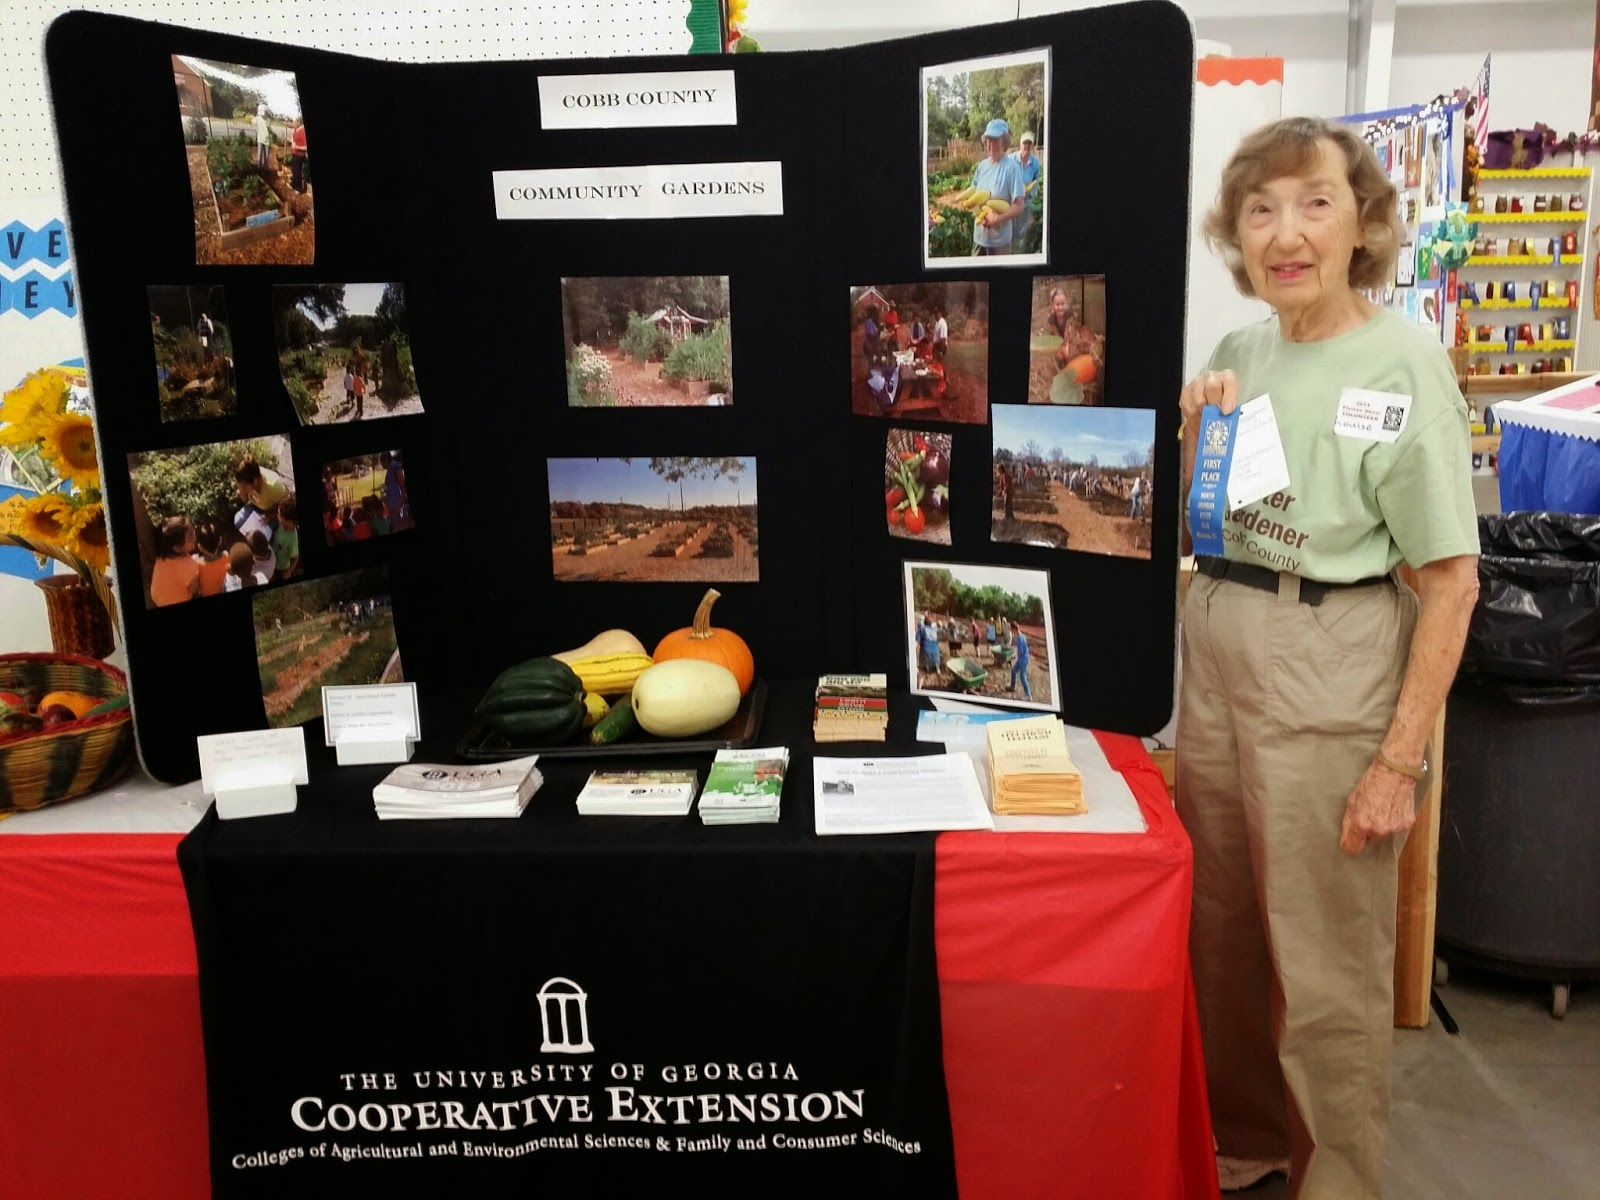 Fabulous Uga Extension In Cobb County Meet The Staff Home Interior And Landscaping Fragforummapetitesourisinfo